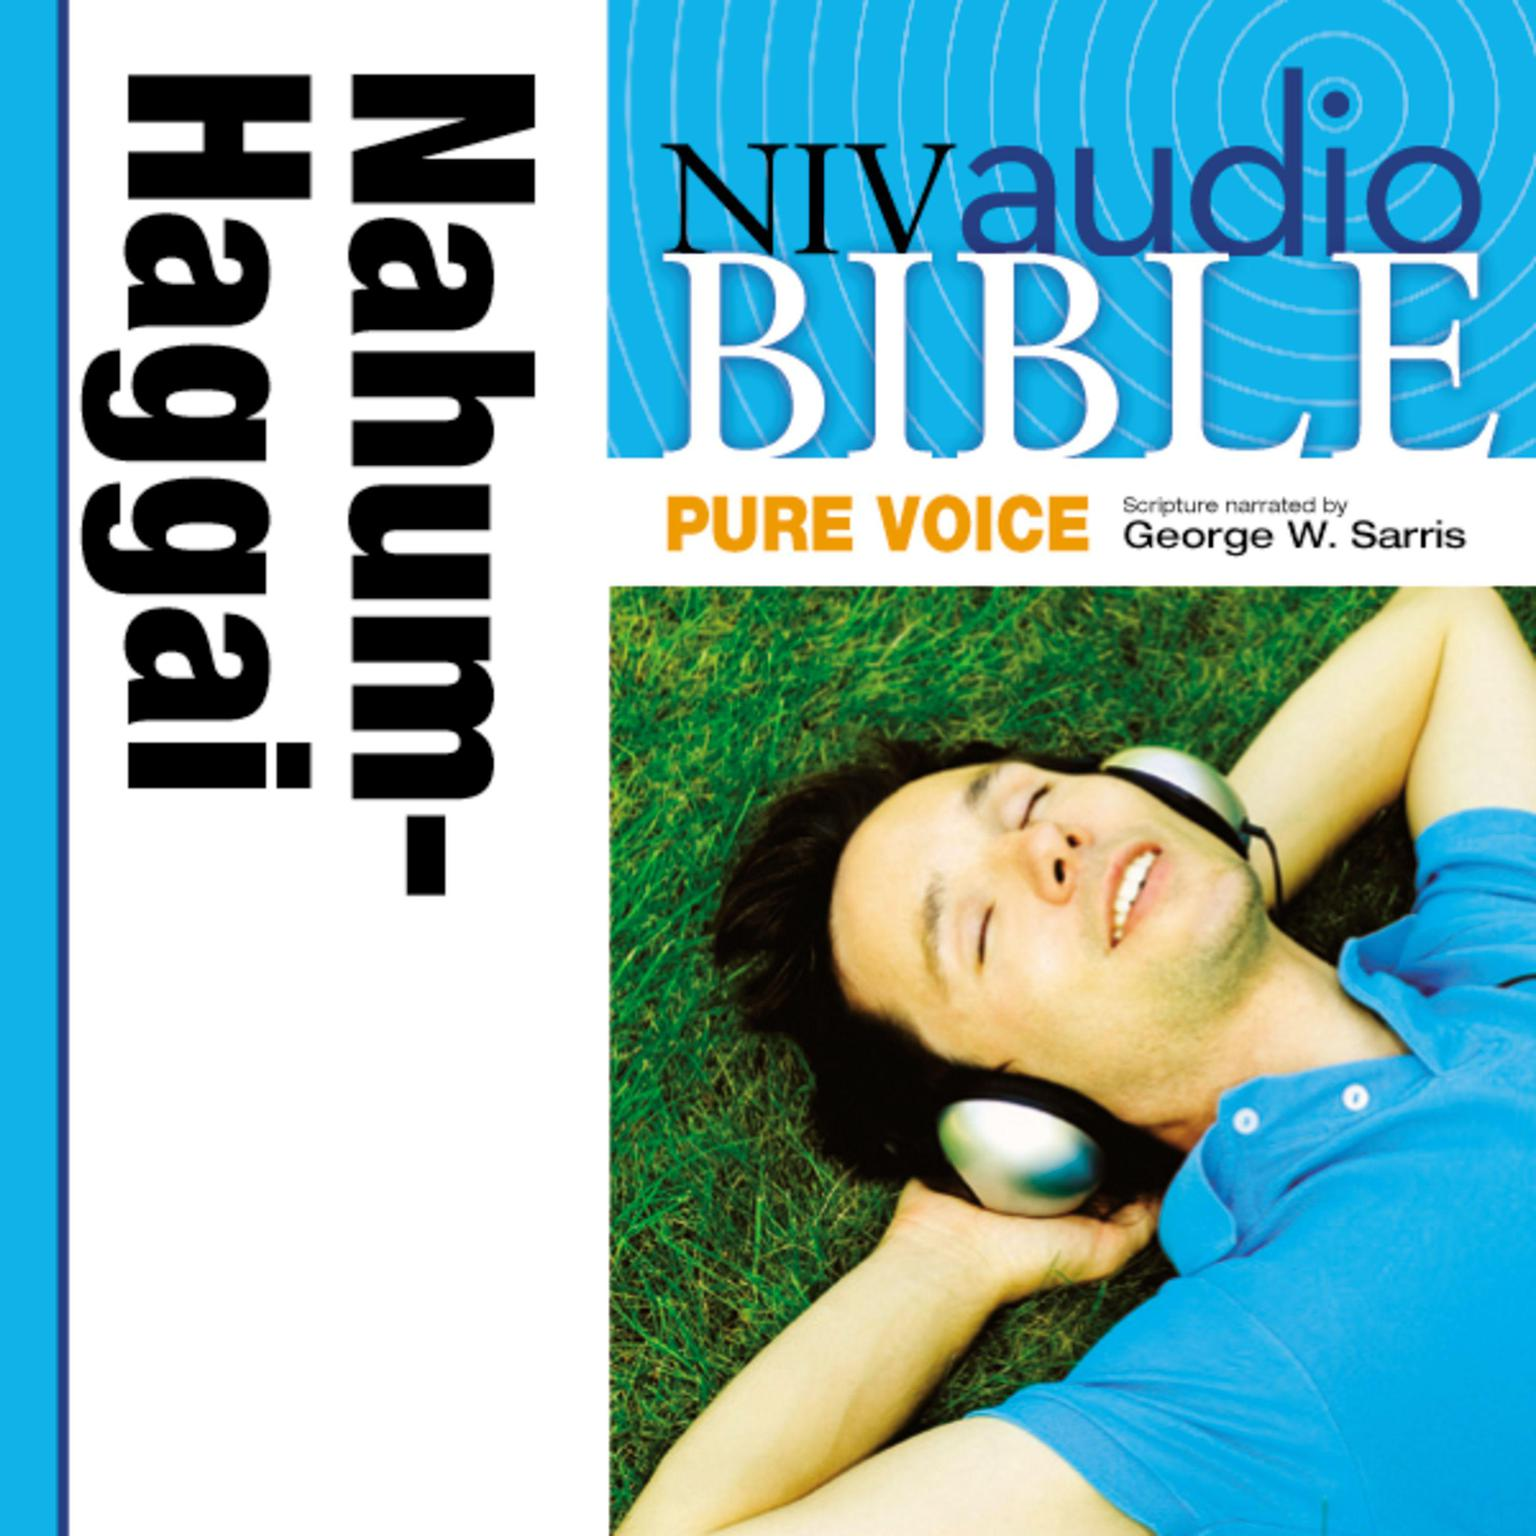 Printable NIV, Audio Bible, Pure Voice: Nahum, Habakkuk, Zephaniah, and Haggai, Audio Download (Narrated by George W. Sarris) Audiobook Cover Art